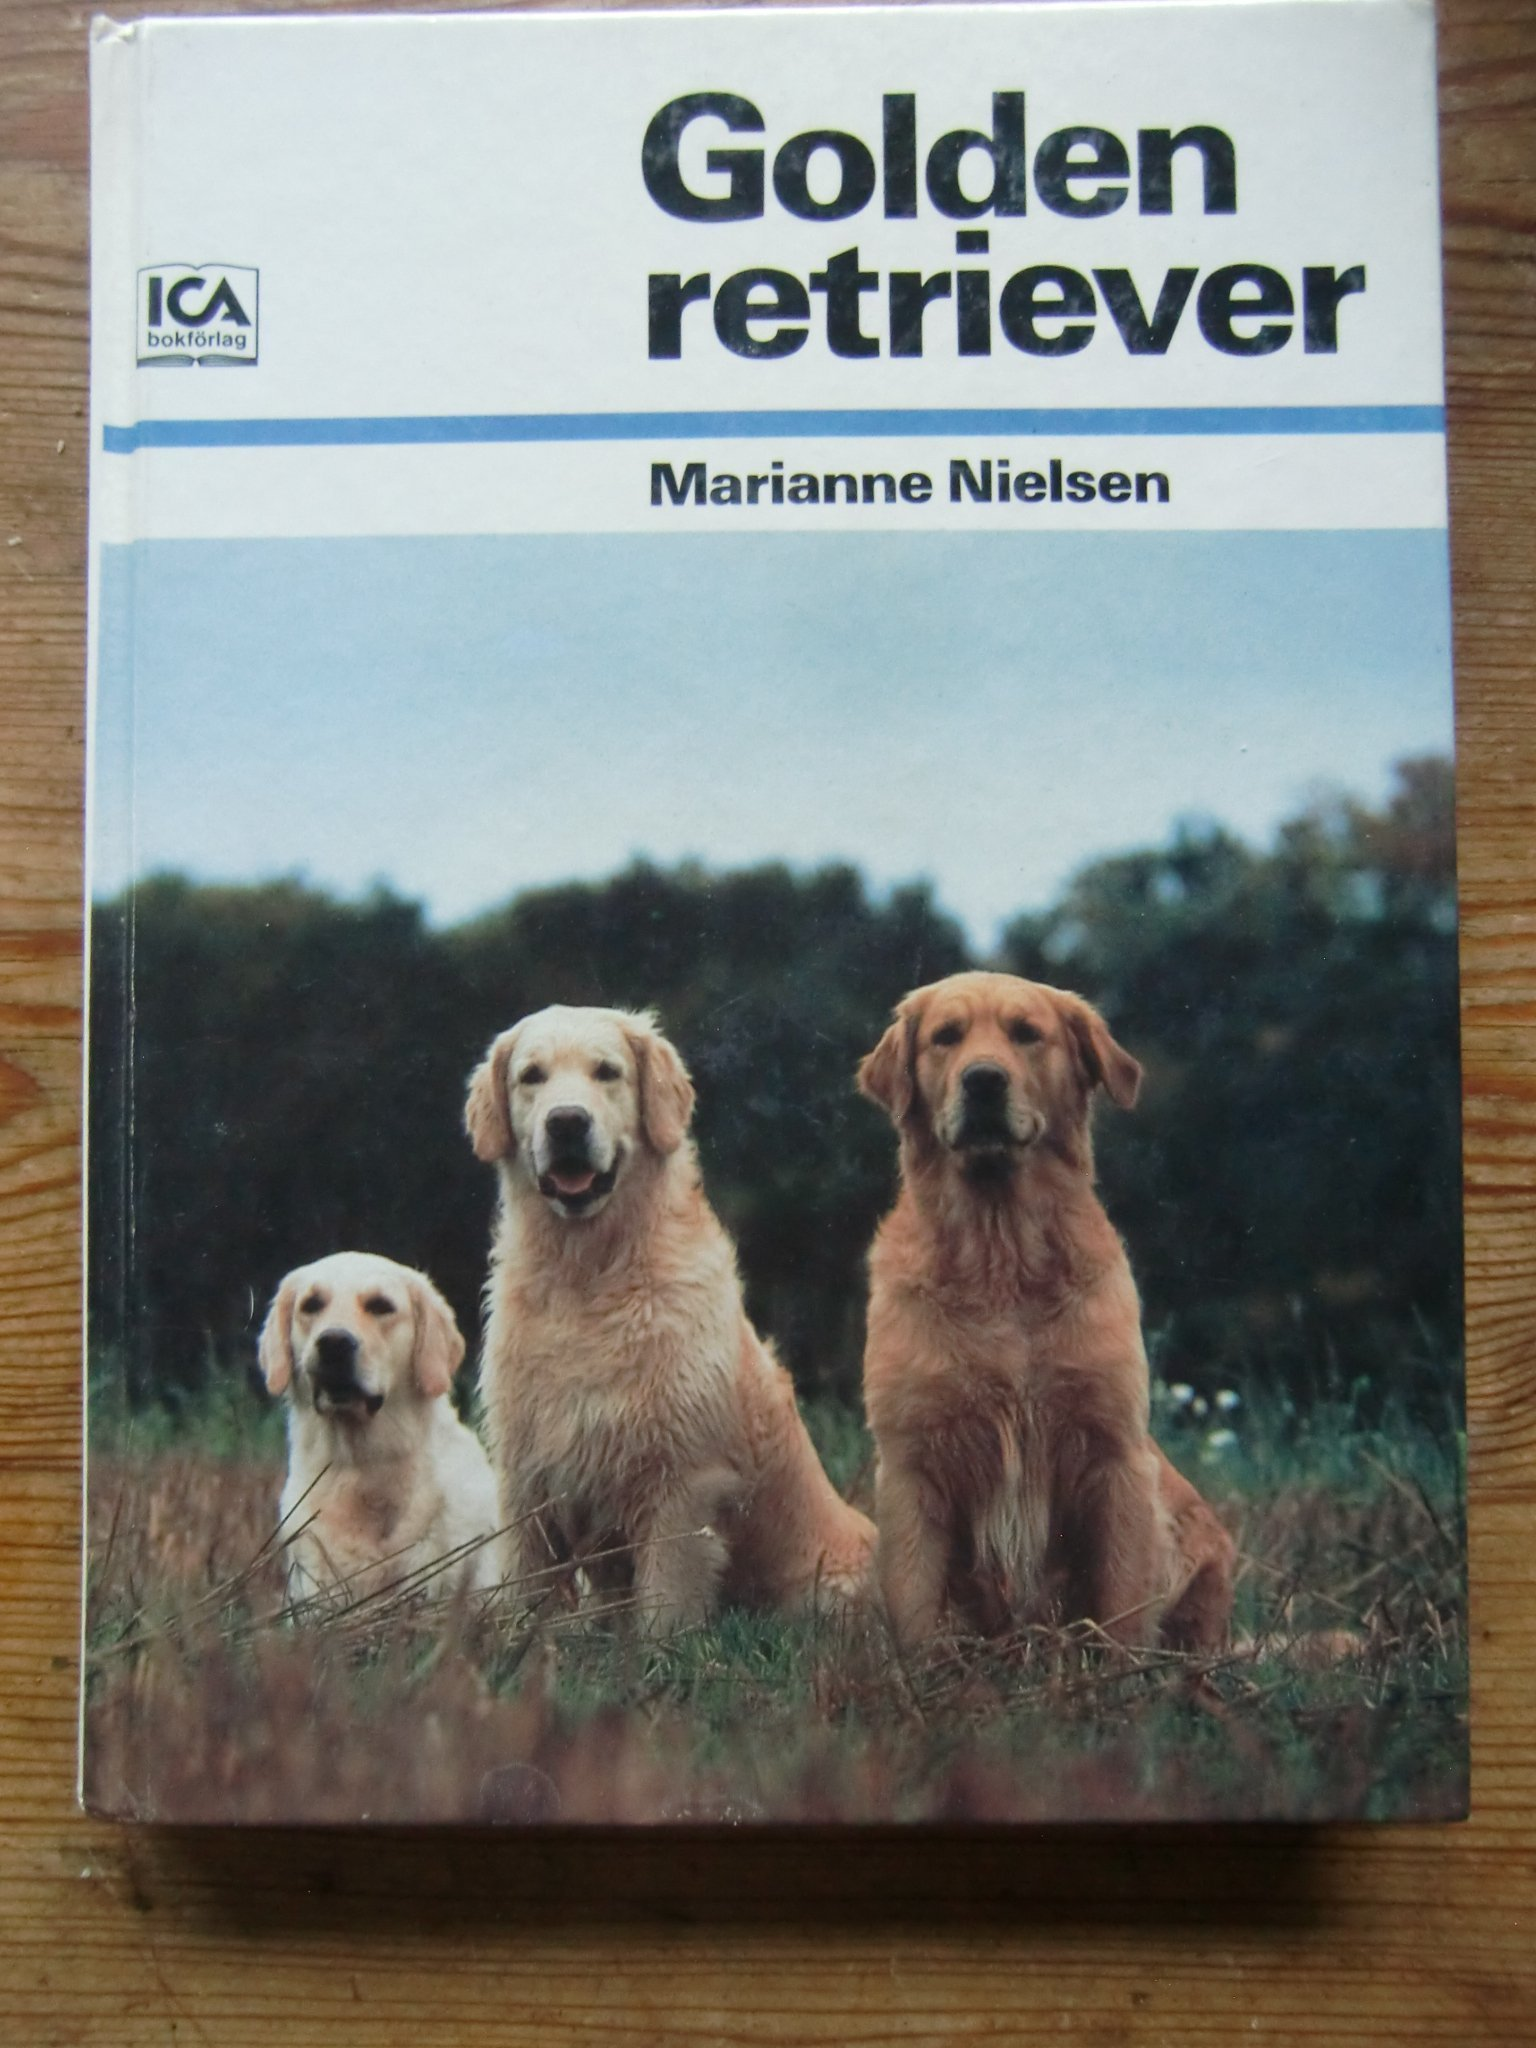 NIELSEN, MARIANNE: Golden retriever.